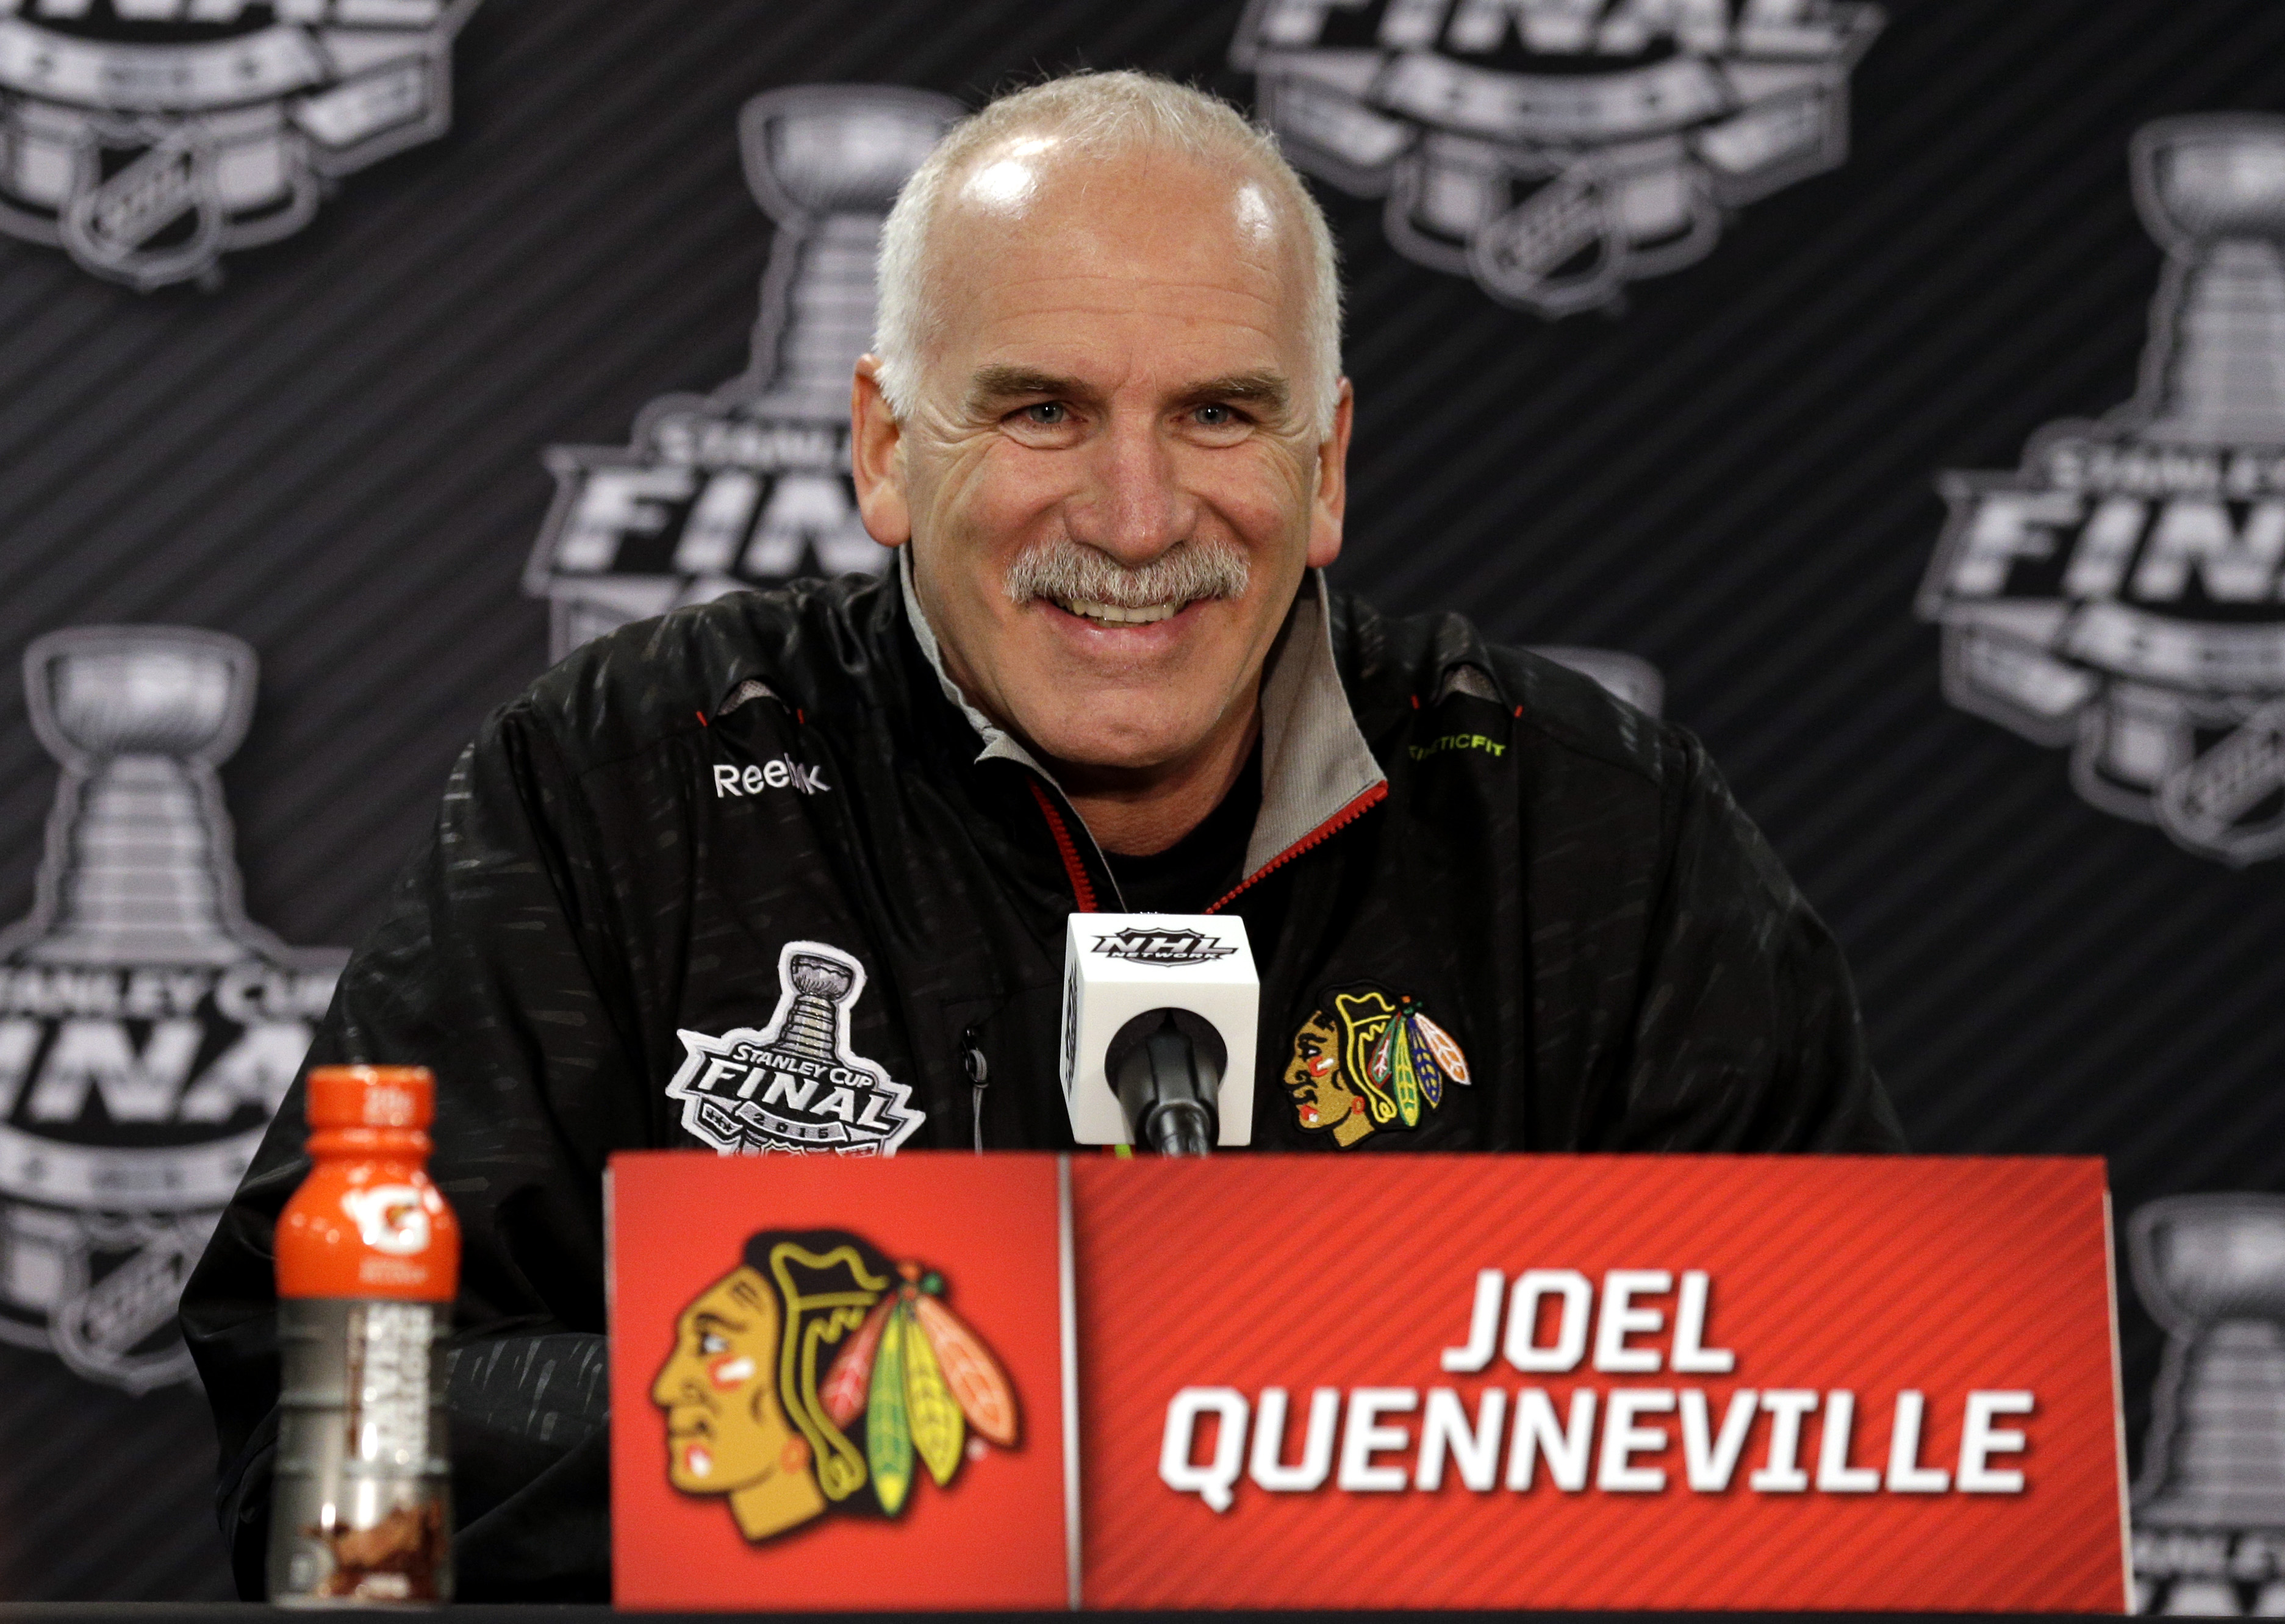 FILE - In this June 7, 2015, file photo, Chicago Blackhawks head coach Joel Quenneville smiles as he talks during a news conference in Chicago. The Chicago Blackhawks have given a three-year contract extension to Joel Quenneville, locking up the highly su